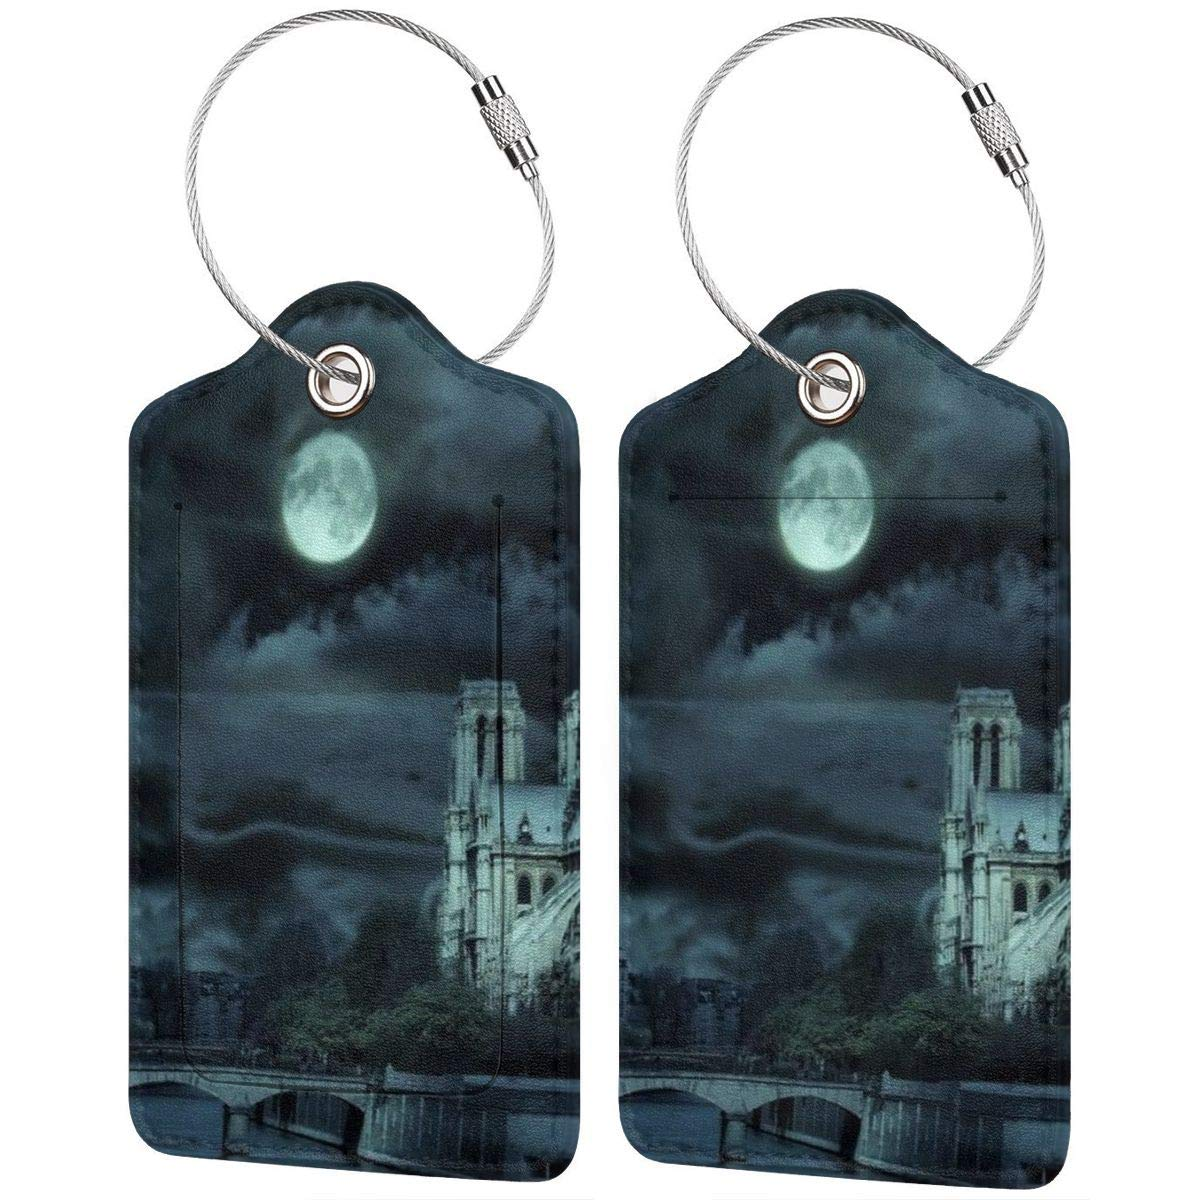 Castle Night Luggage Tag Label Travel Bag Label With Privacy Cover Luggage Tag Leather Personalized Suitcase Tag Travel Accessories